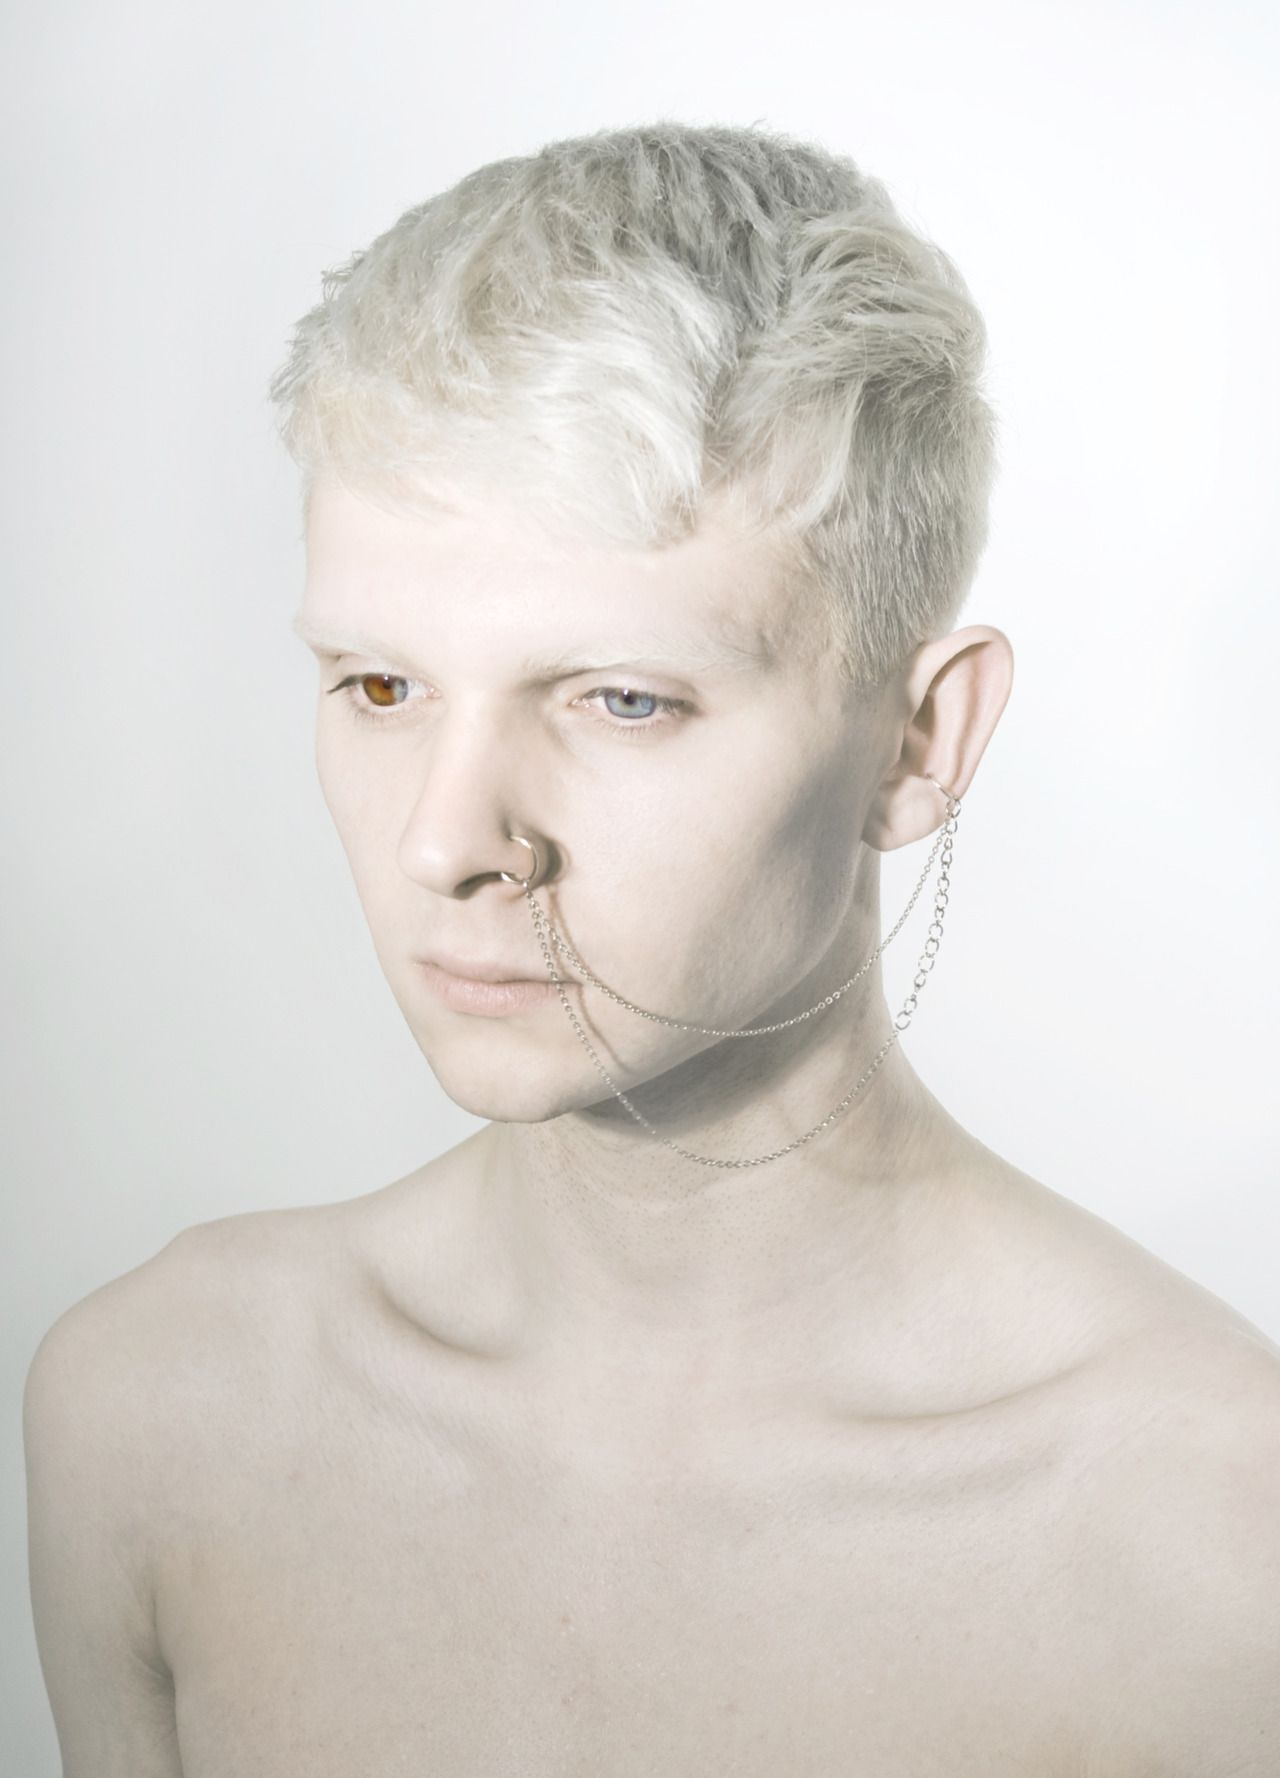 albinism essay The tanzania albinism collective are raising their voices for the first time   tanzania albinism collective - white african power (we live in danger) hd  music video info shopping tap to unmute  music essay tanzania.